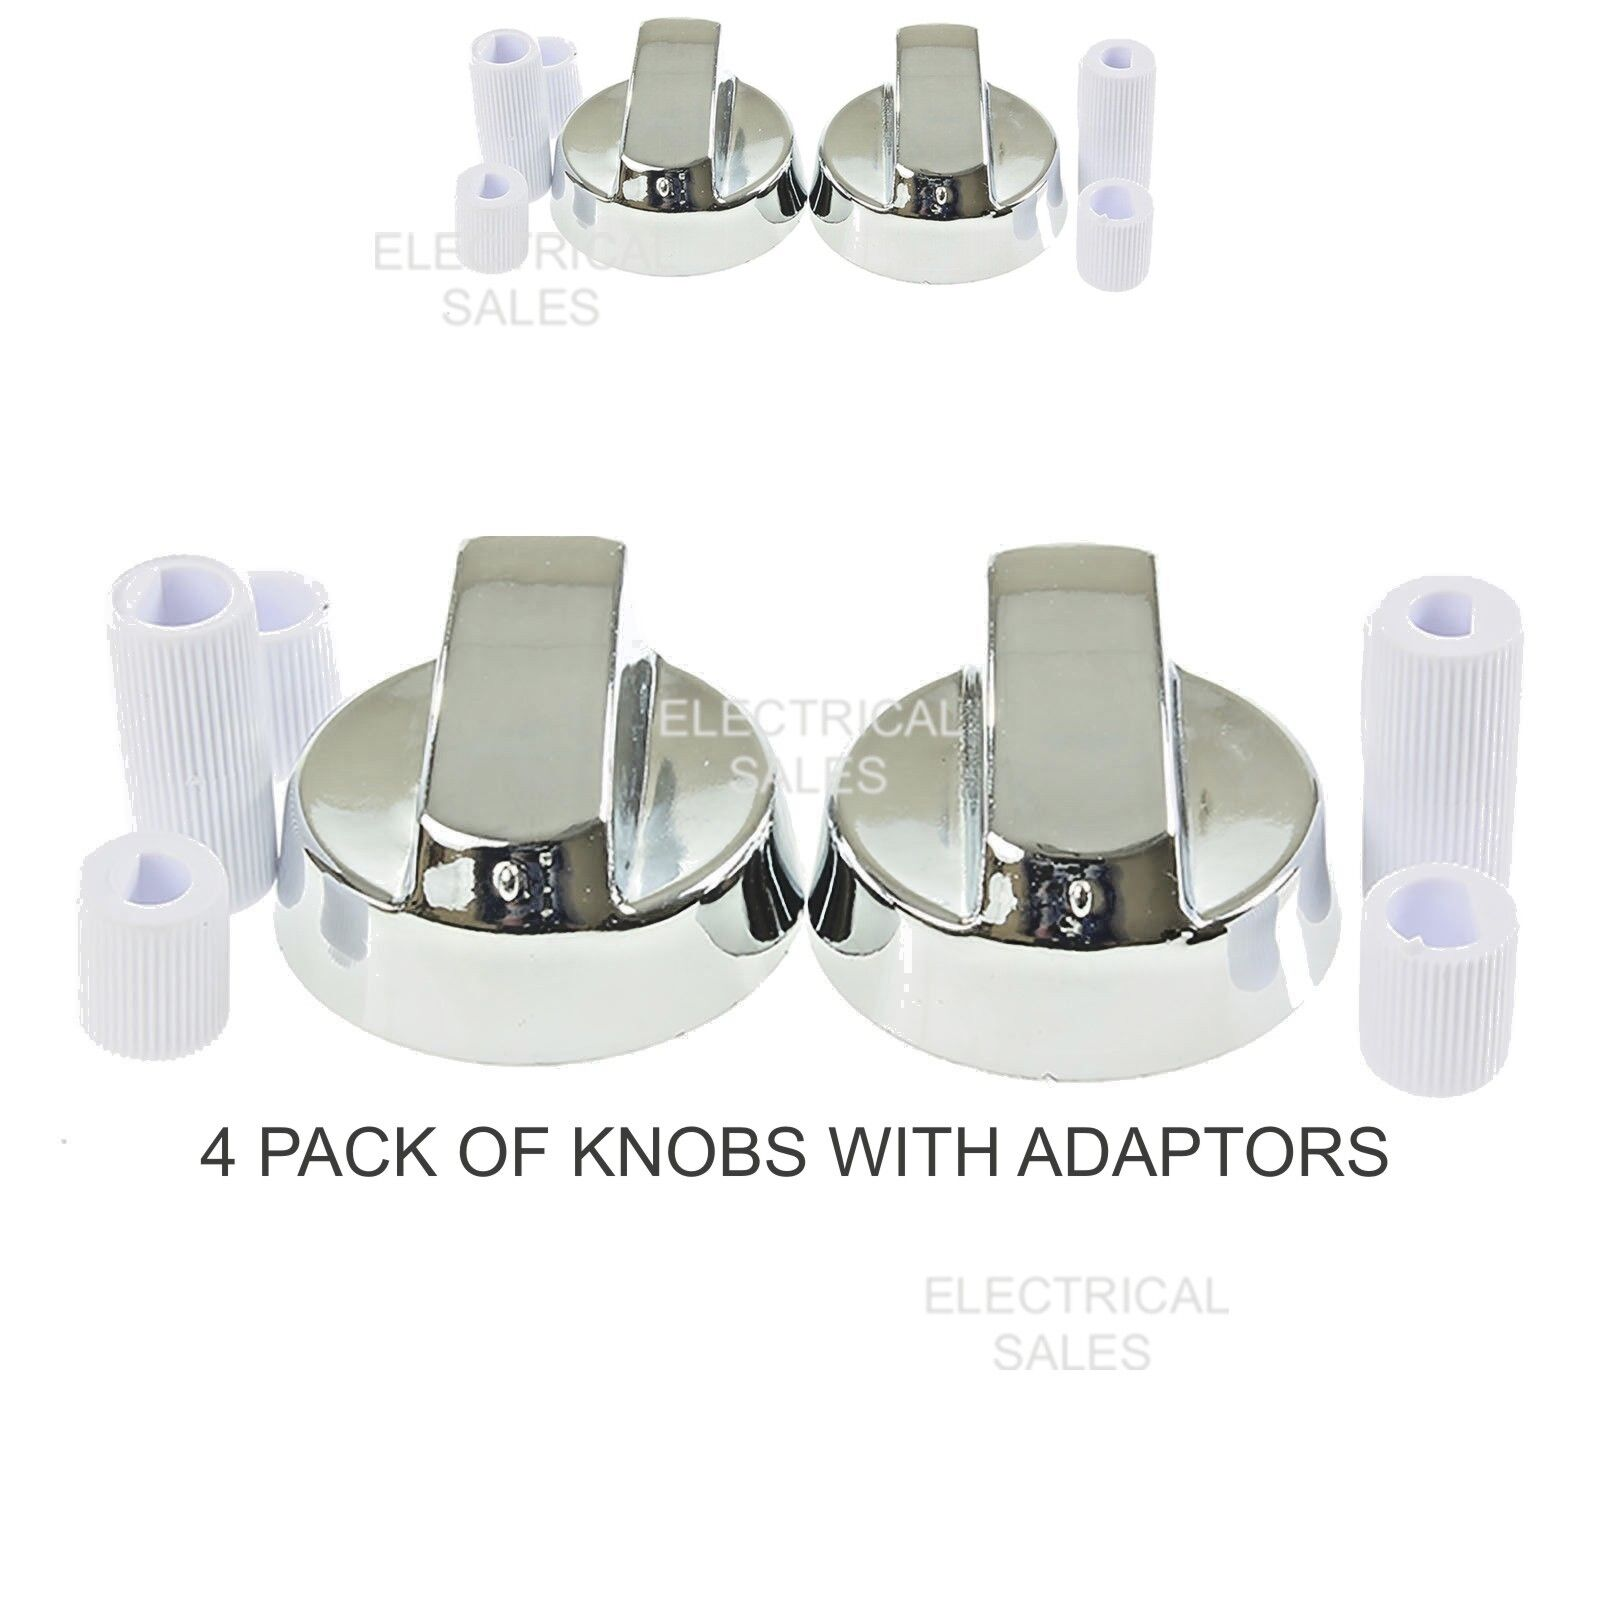 6 PACK OF KNOBS FITS BEKO COOKER OVEN SILVER HOB CONTROL KNOB DIAL /& ADAPTORS